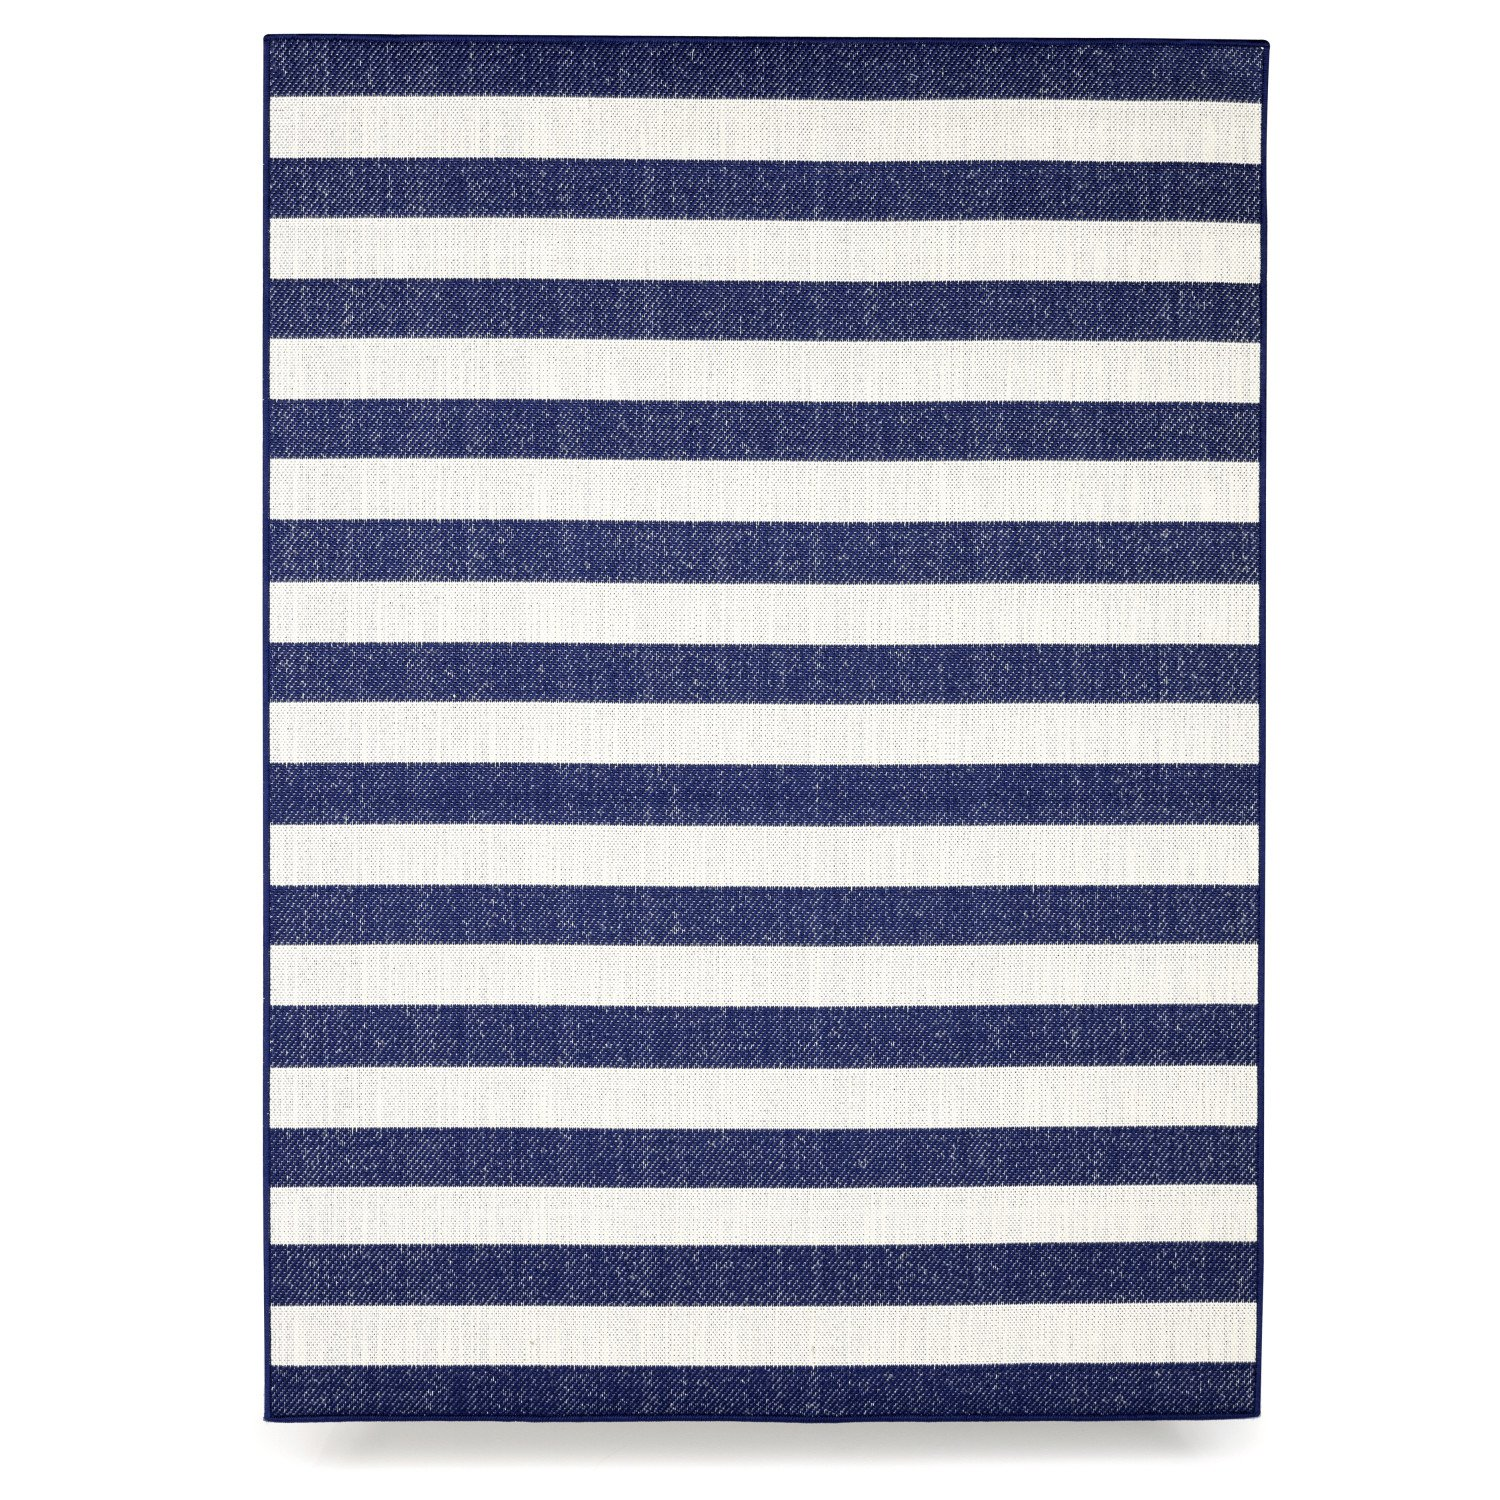 Budge Naples Outdoor Patio Rug, RUG057RB2 (5' Long x 7' Wide, Royal Blue)